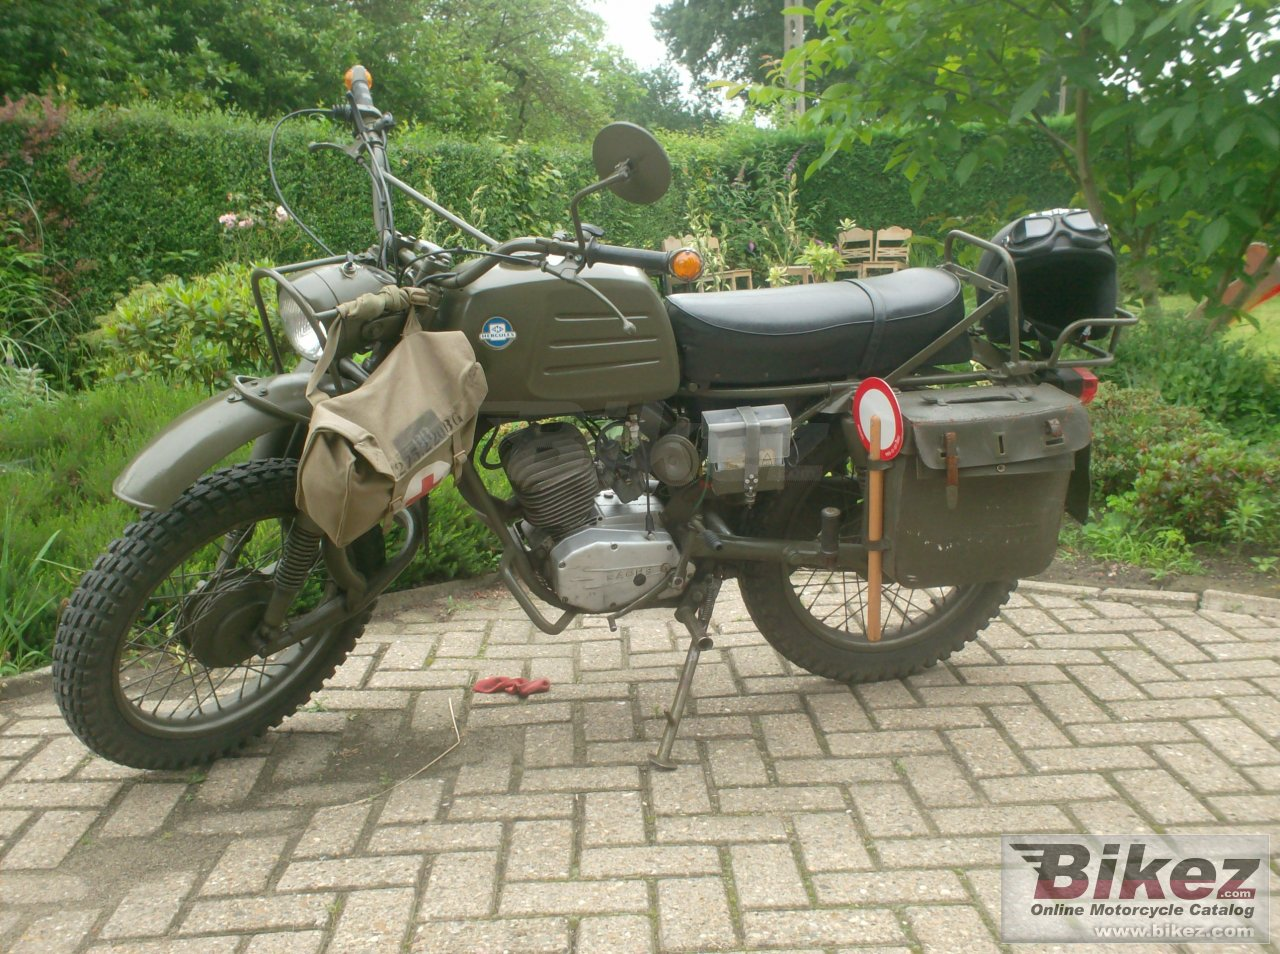 Big m k 125 military picture and wallpaper from Bikez.com